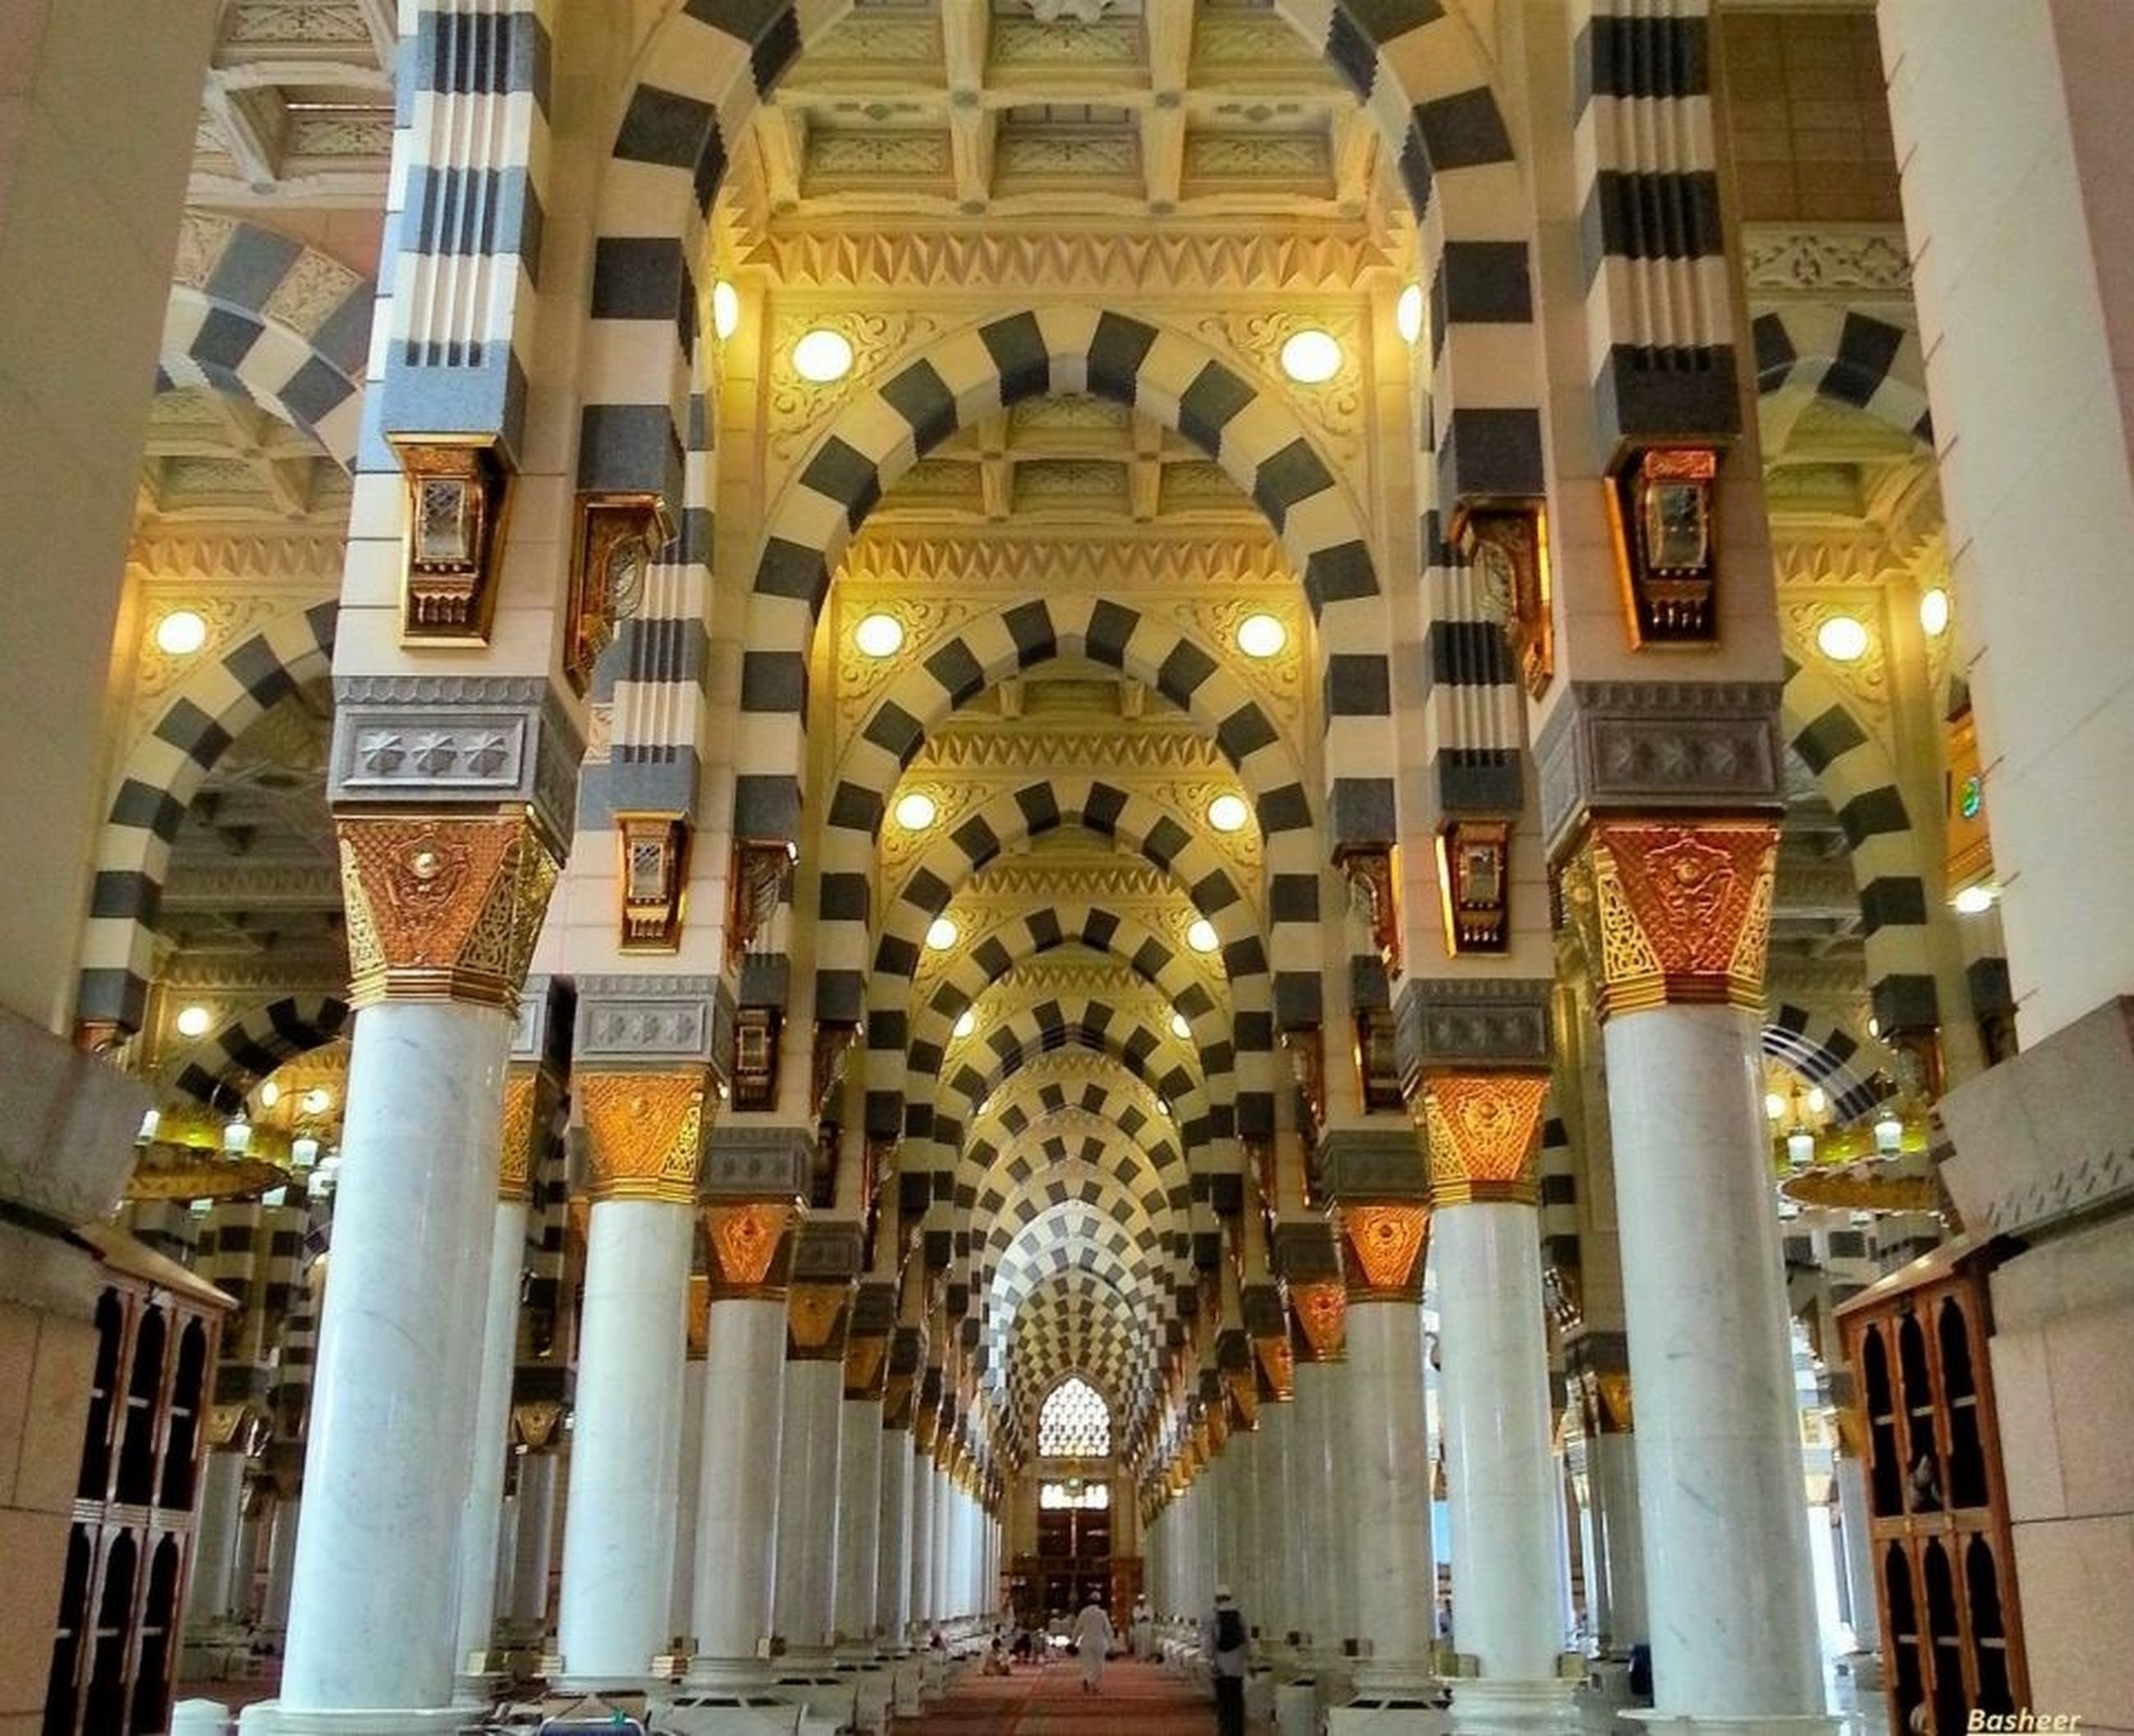 illuminated, architecture, built structure, building exterior, lighting equipment, night, indoors, travel destinations, decoration, in a row, ceiling, famous place, place of worship, low angle view, religion, city, incidental people, building, tourism, ornate